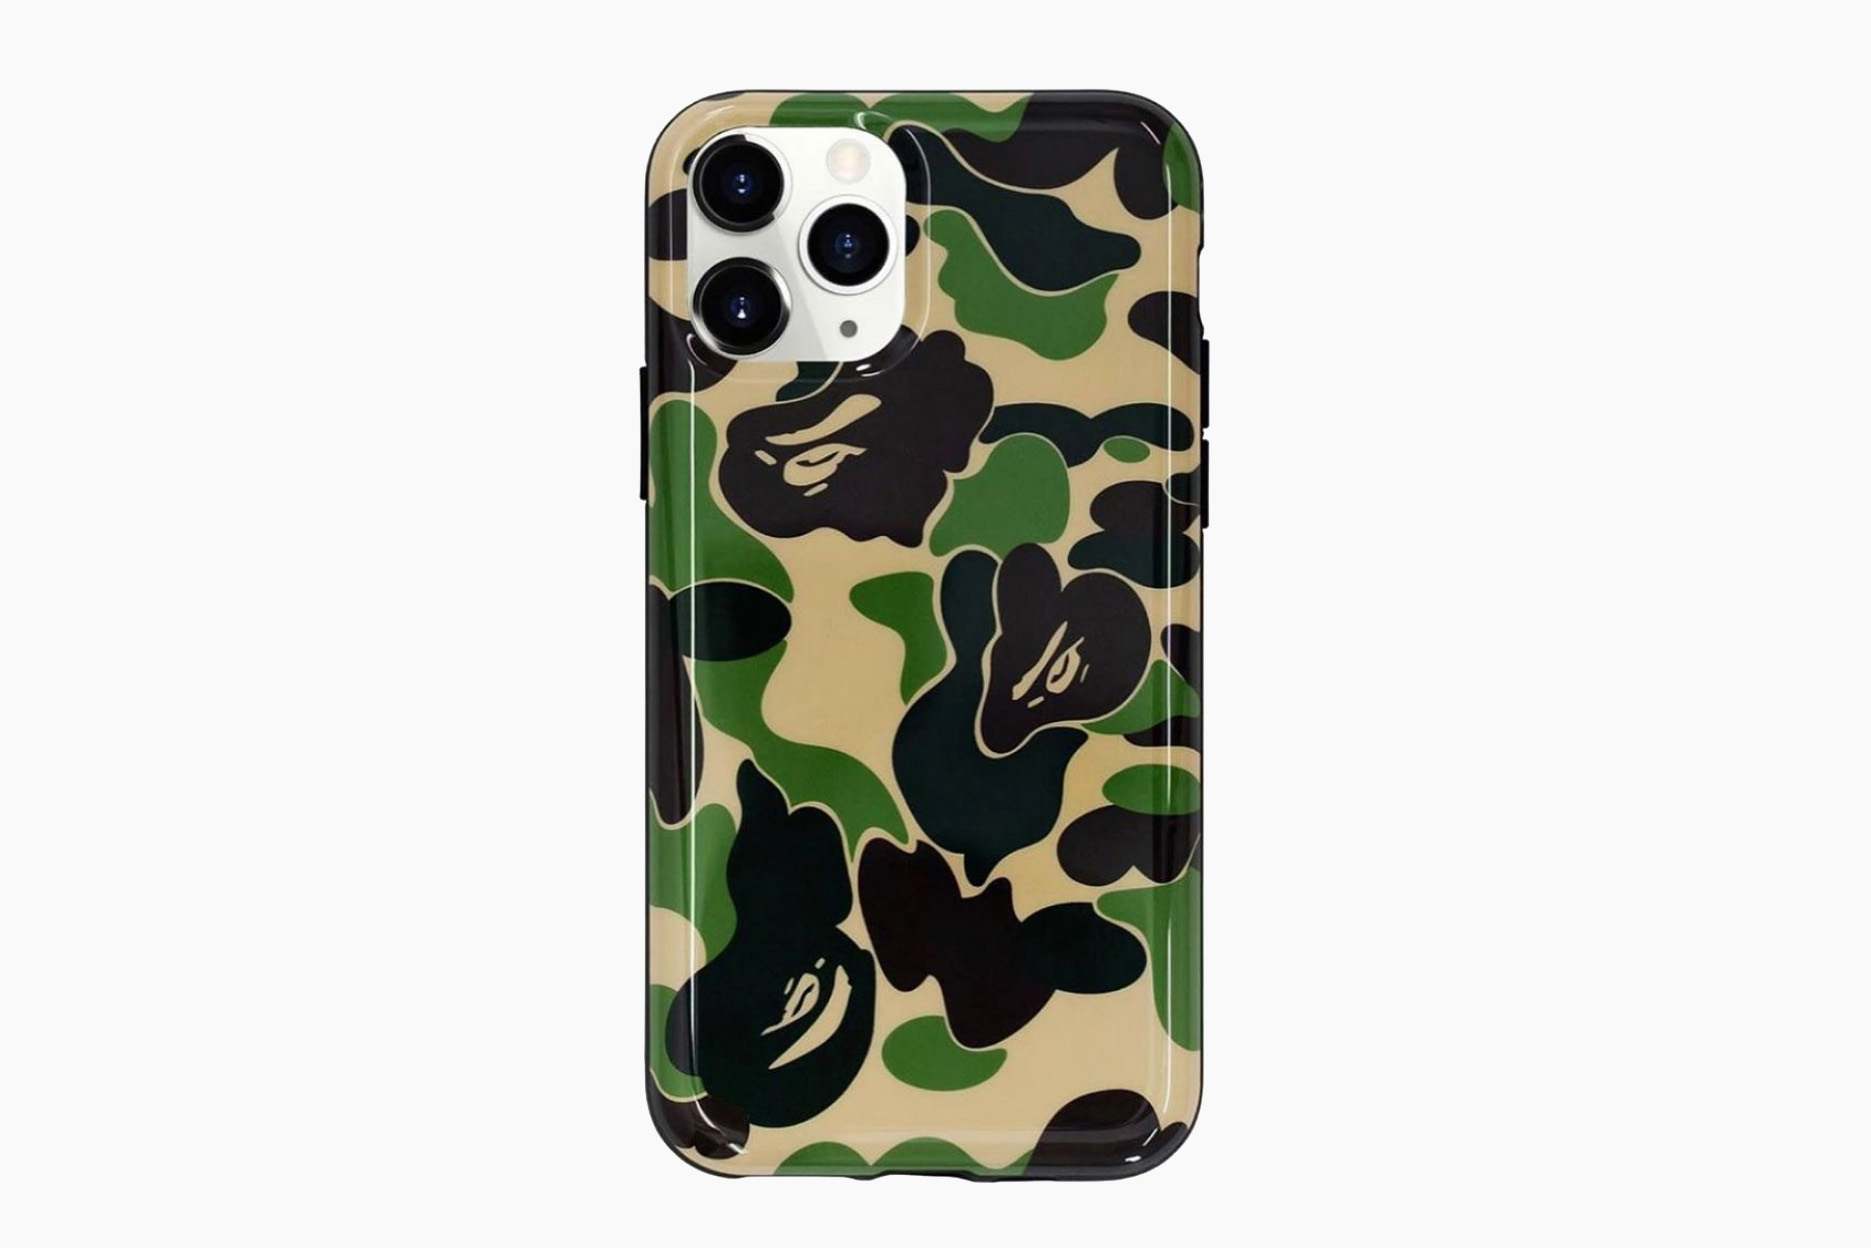 BAPE ABC CAMO iPhone 11 & iPhone 11 Pro Cases